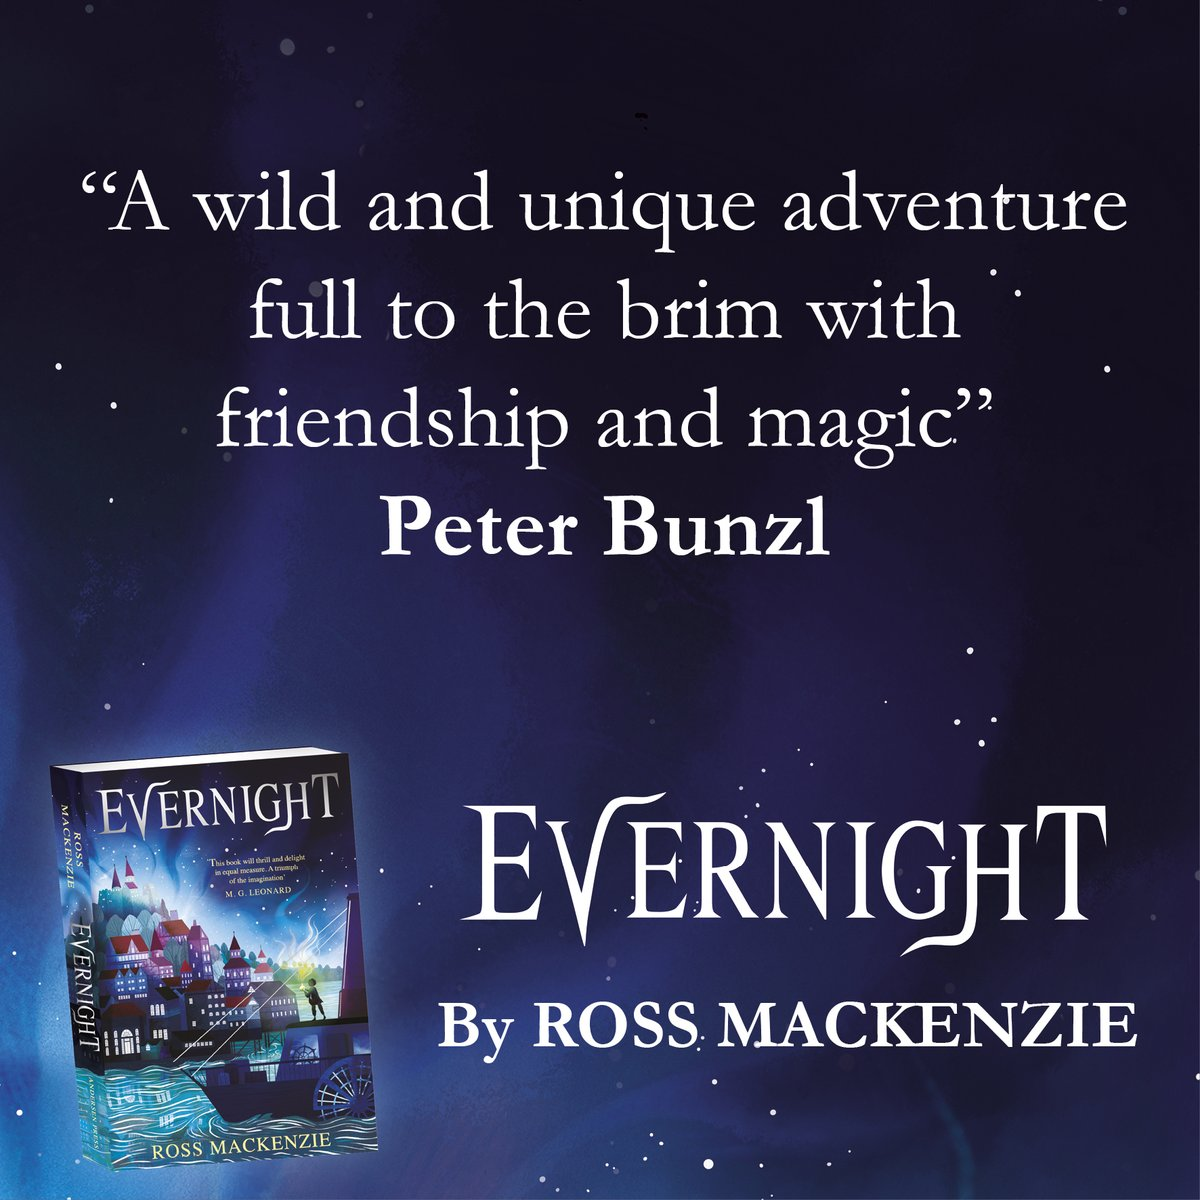 The Evernight approaches... 💫🌌💫 A wild and unique adventure full to the brim with friendship and magic @peterbunzl 💫🌌💫 #EvernightBook by Ross MacKenzie released 6th February! @RossAuthor